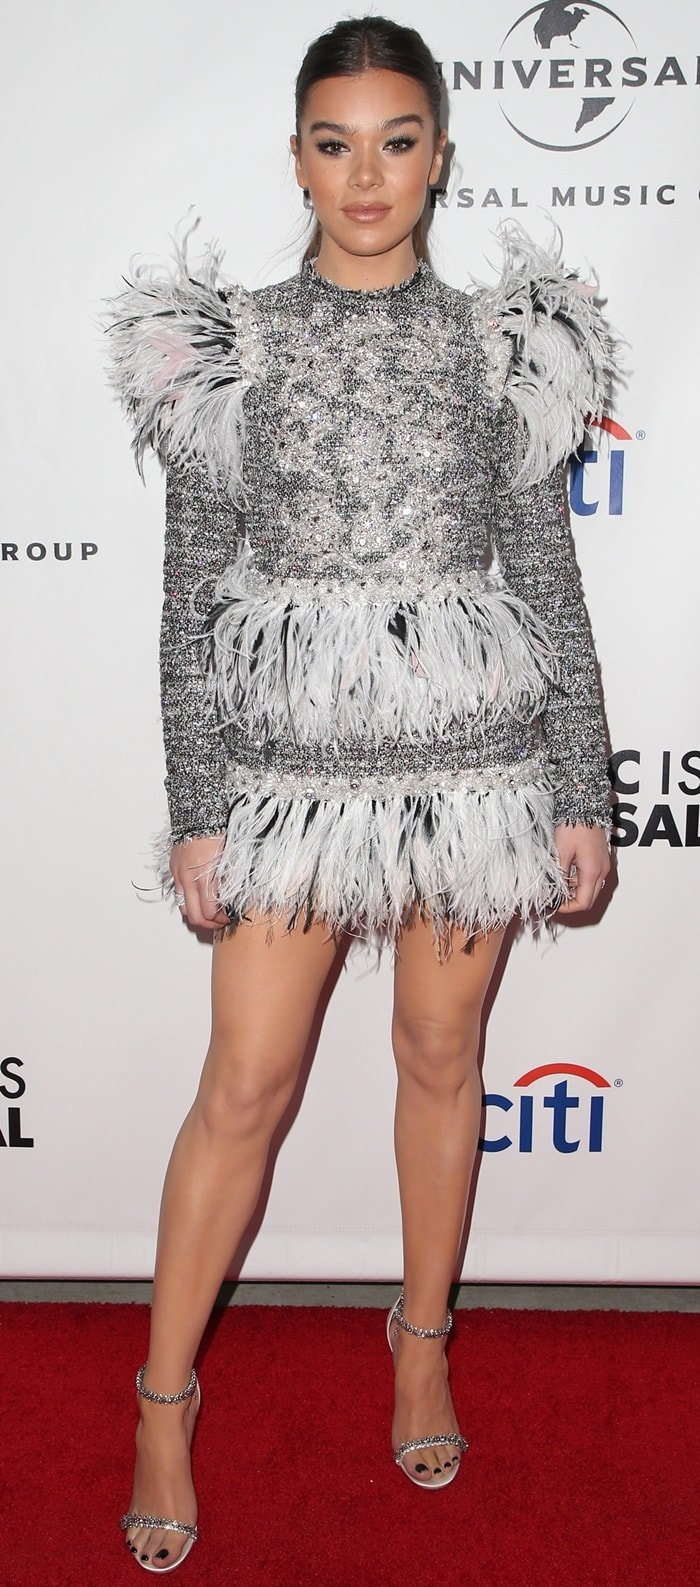 Hailee Steinfeld displayed her nude legs at Universal Music Group's 2019 After Grammys Party in Los Angeles on February 10, 2019